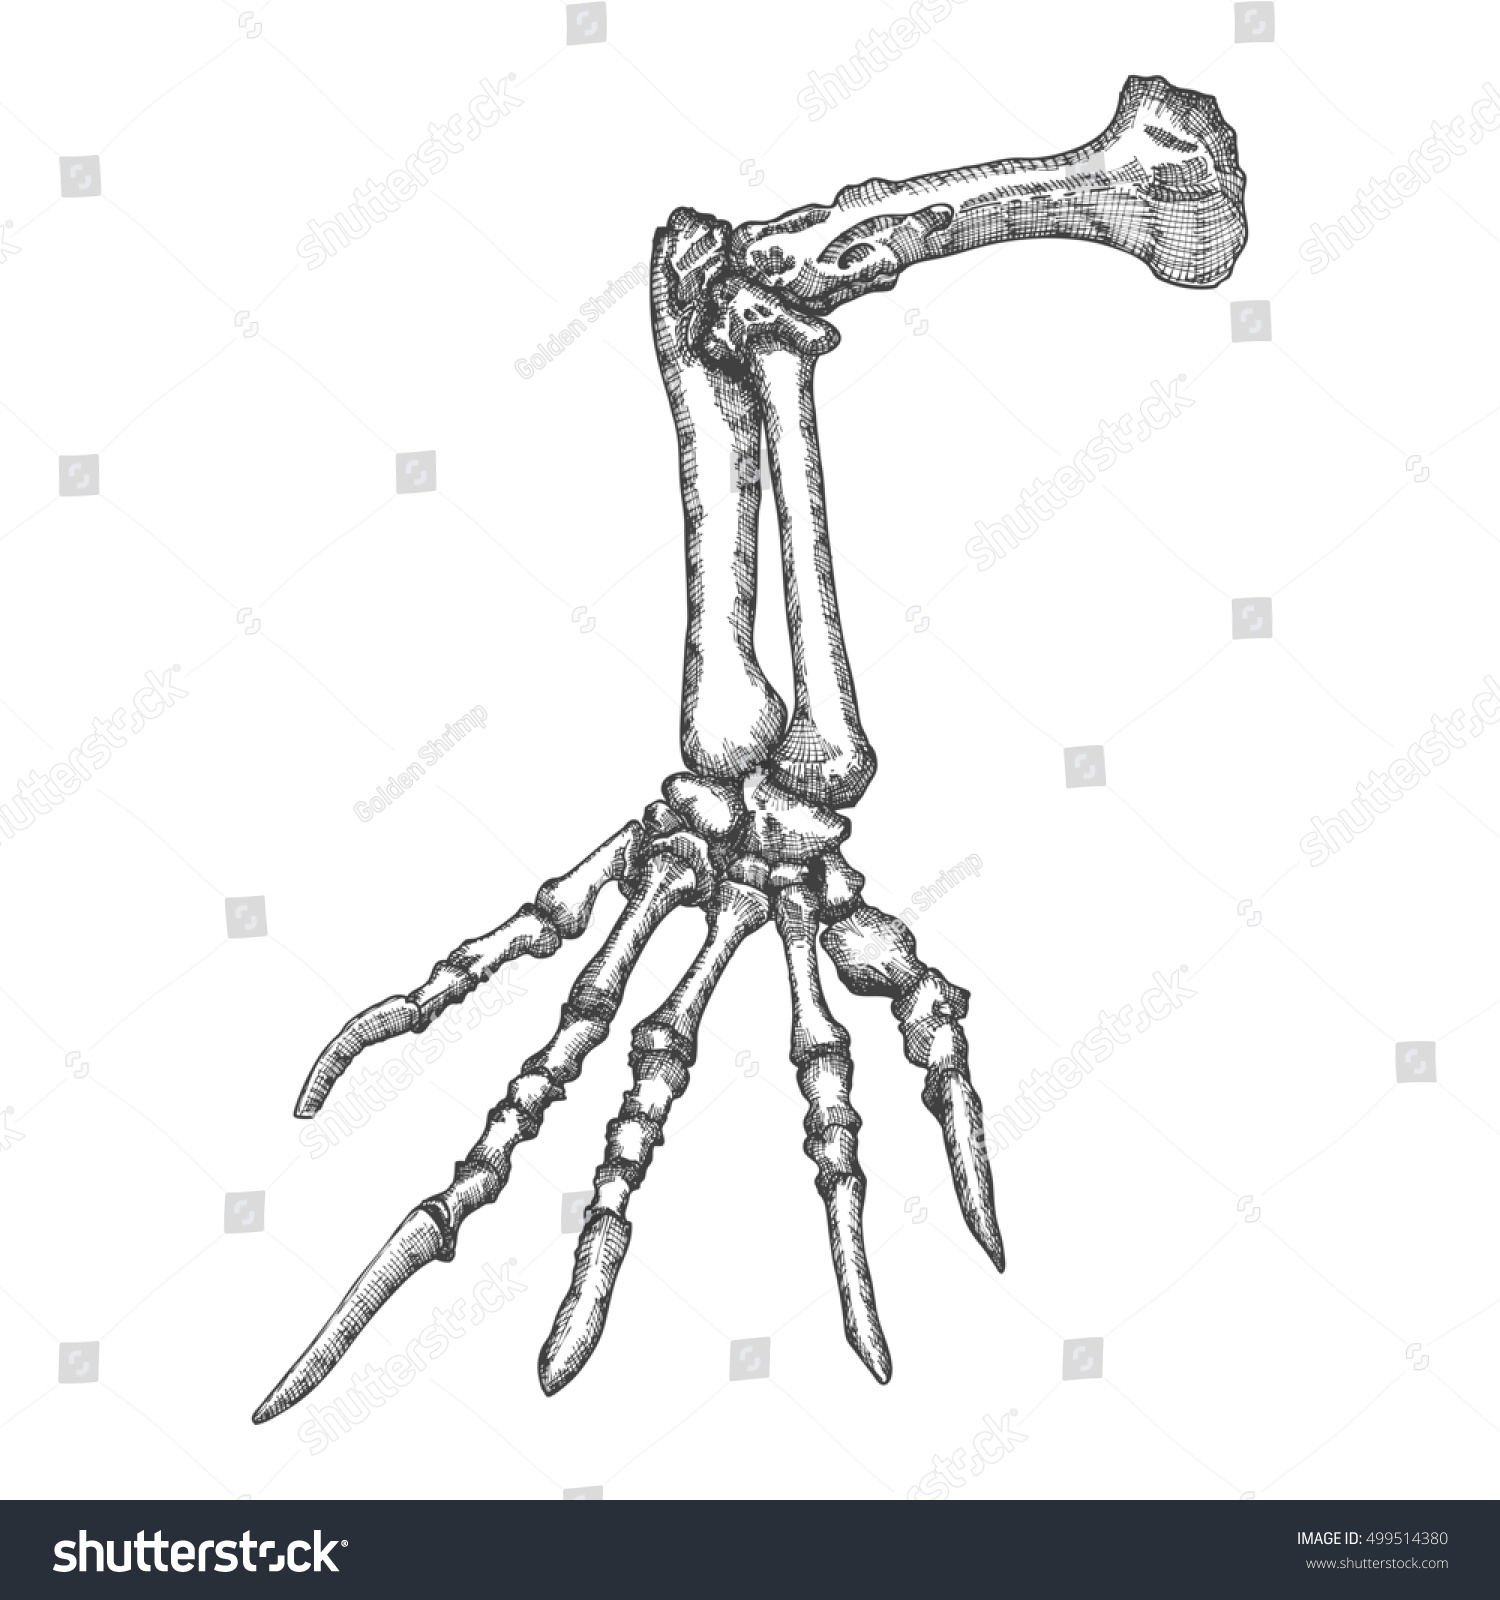 Stylized Drawing Lizard Bones Hand Decorative Stock Illustration ...